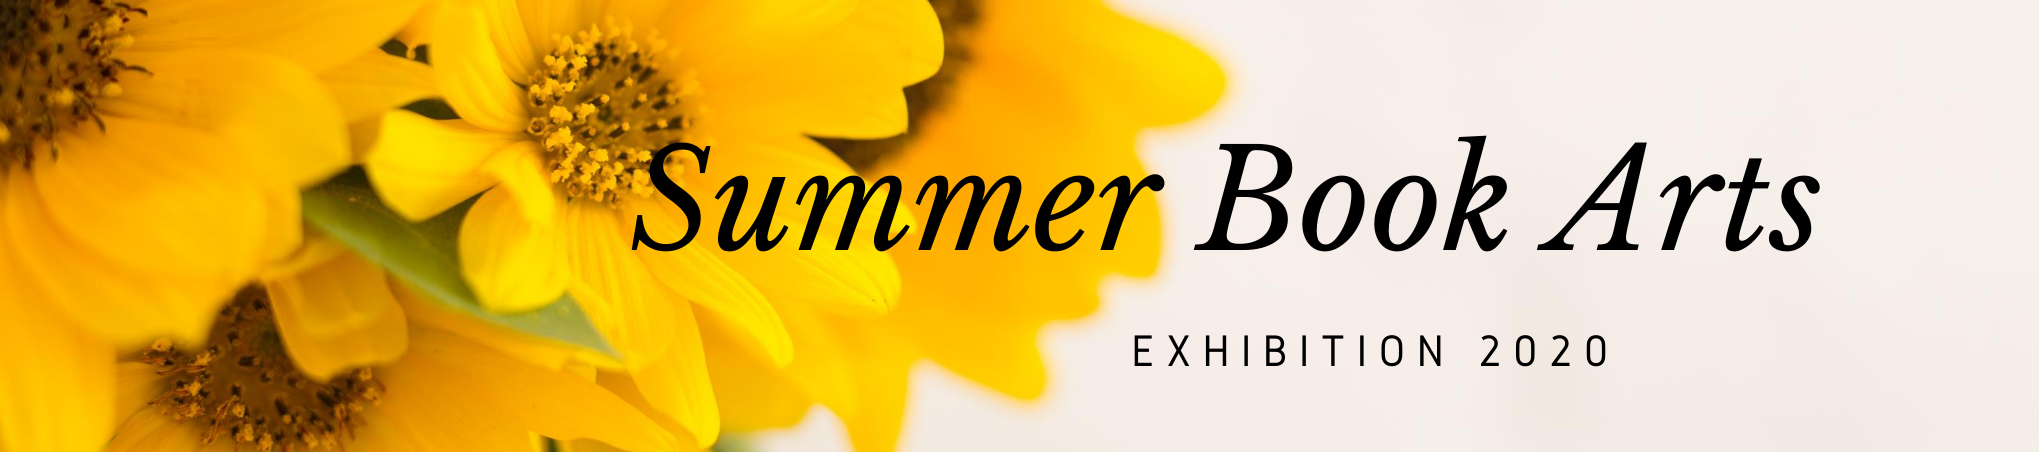 Summer Book Arts Exhibition 2020